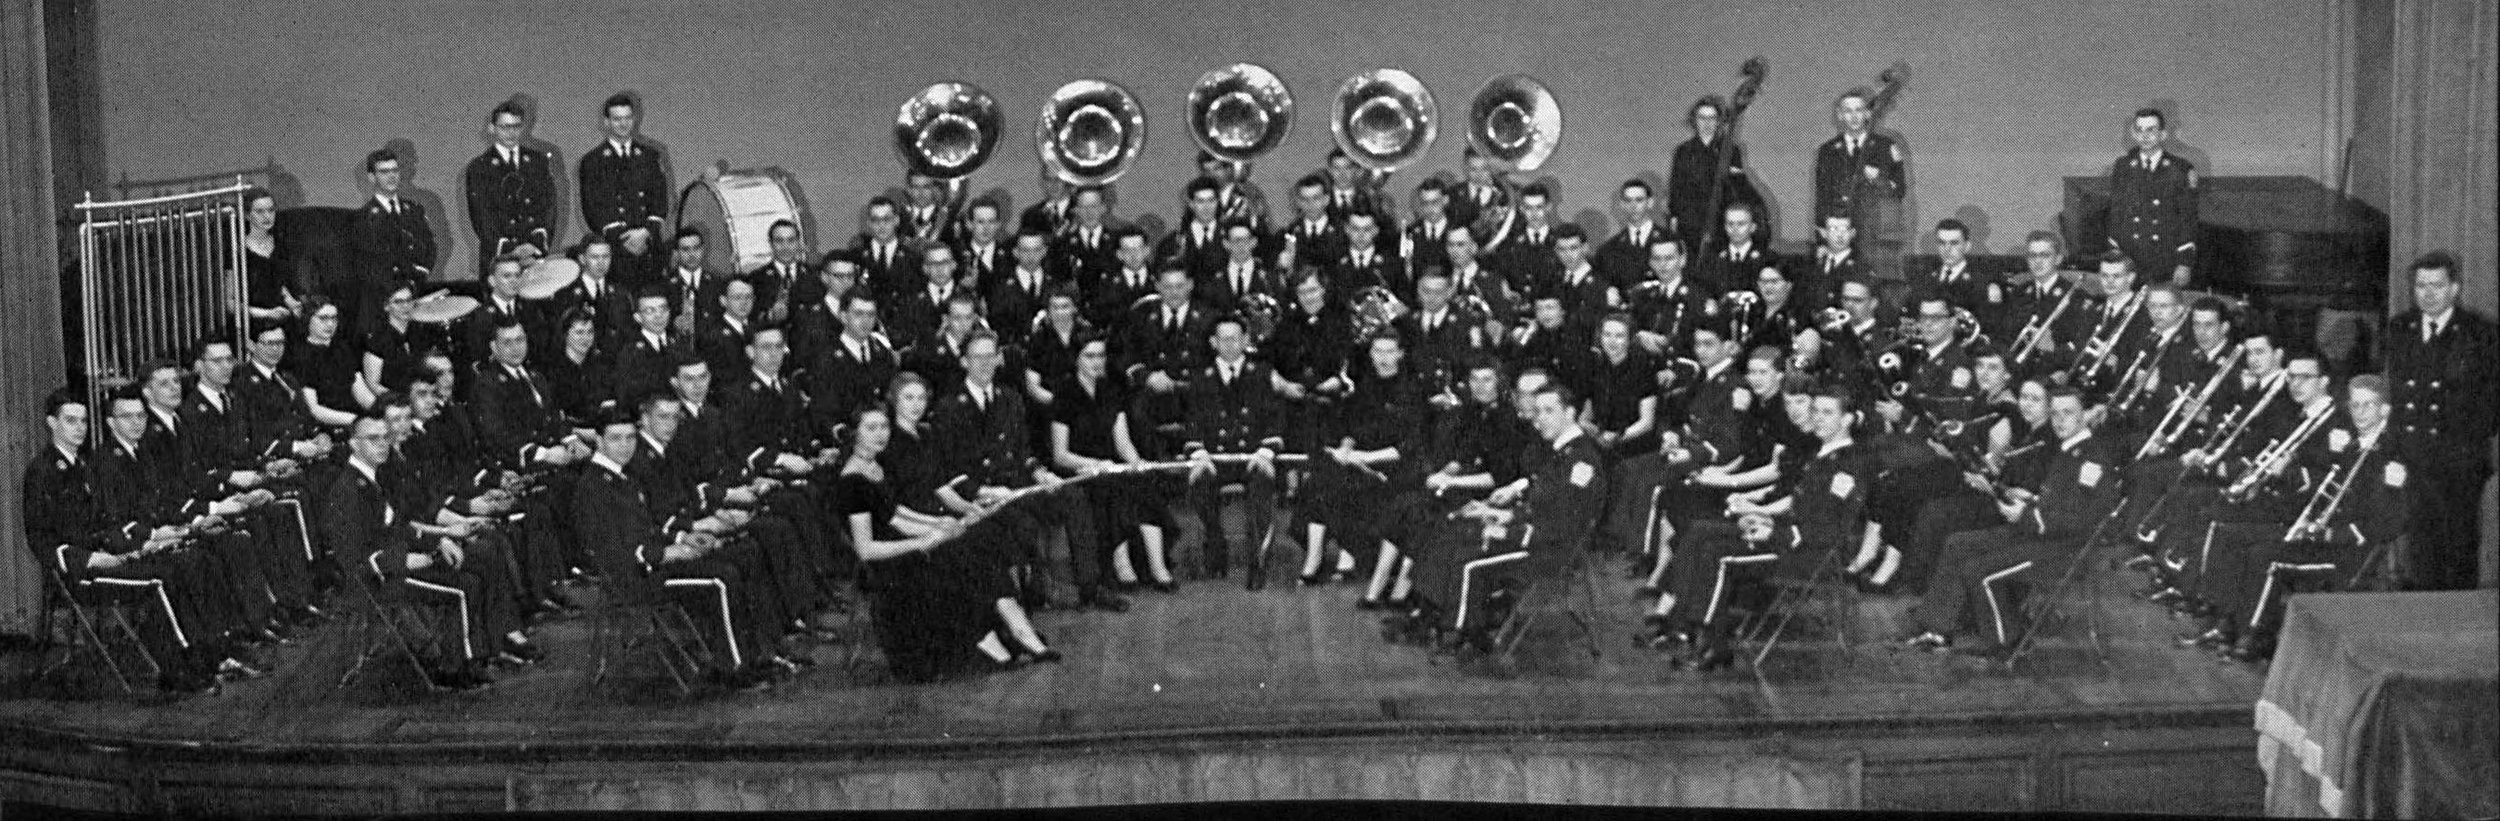 Robert Gohn '53 was in the cornet section - from the LaVie 1953 Yearbook